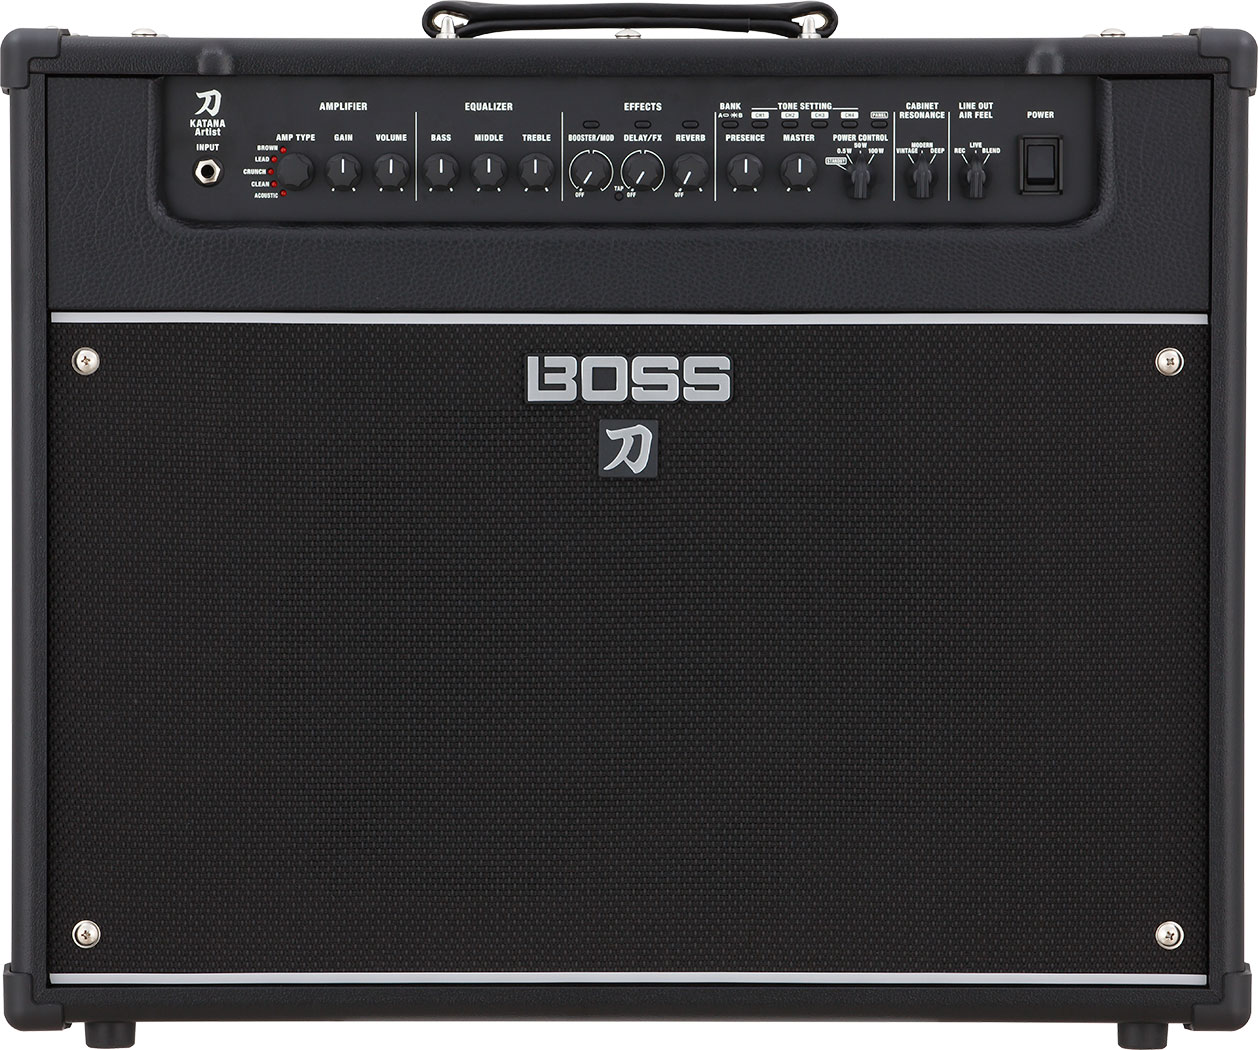 The Boss Katana Artist Amp which the Ideal Amp is based on / evolved from